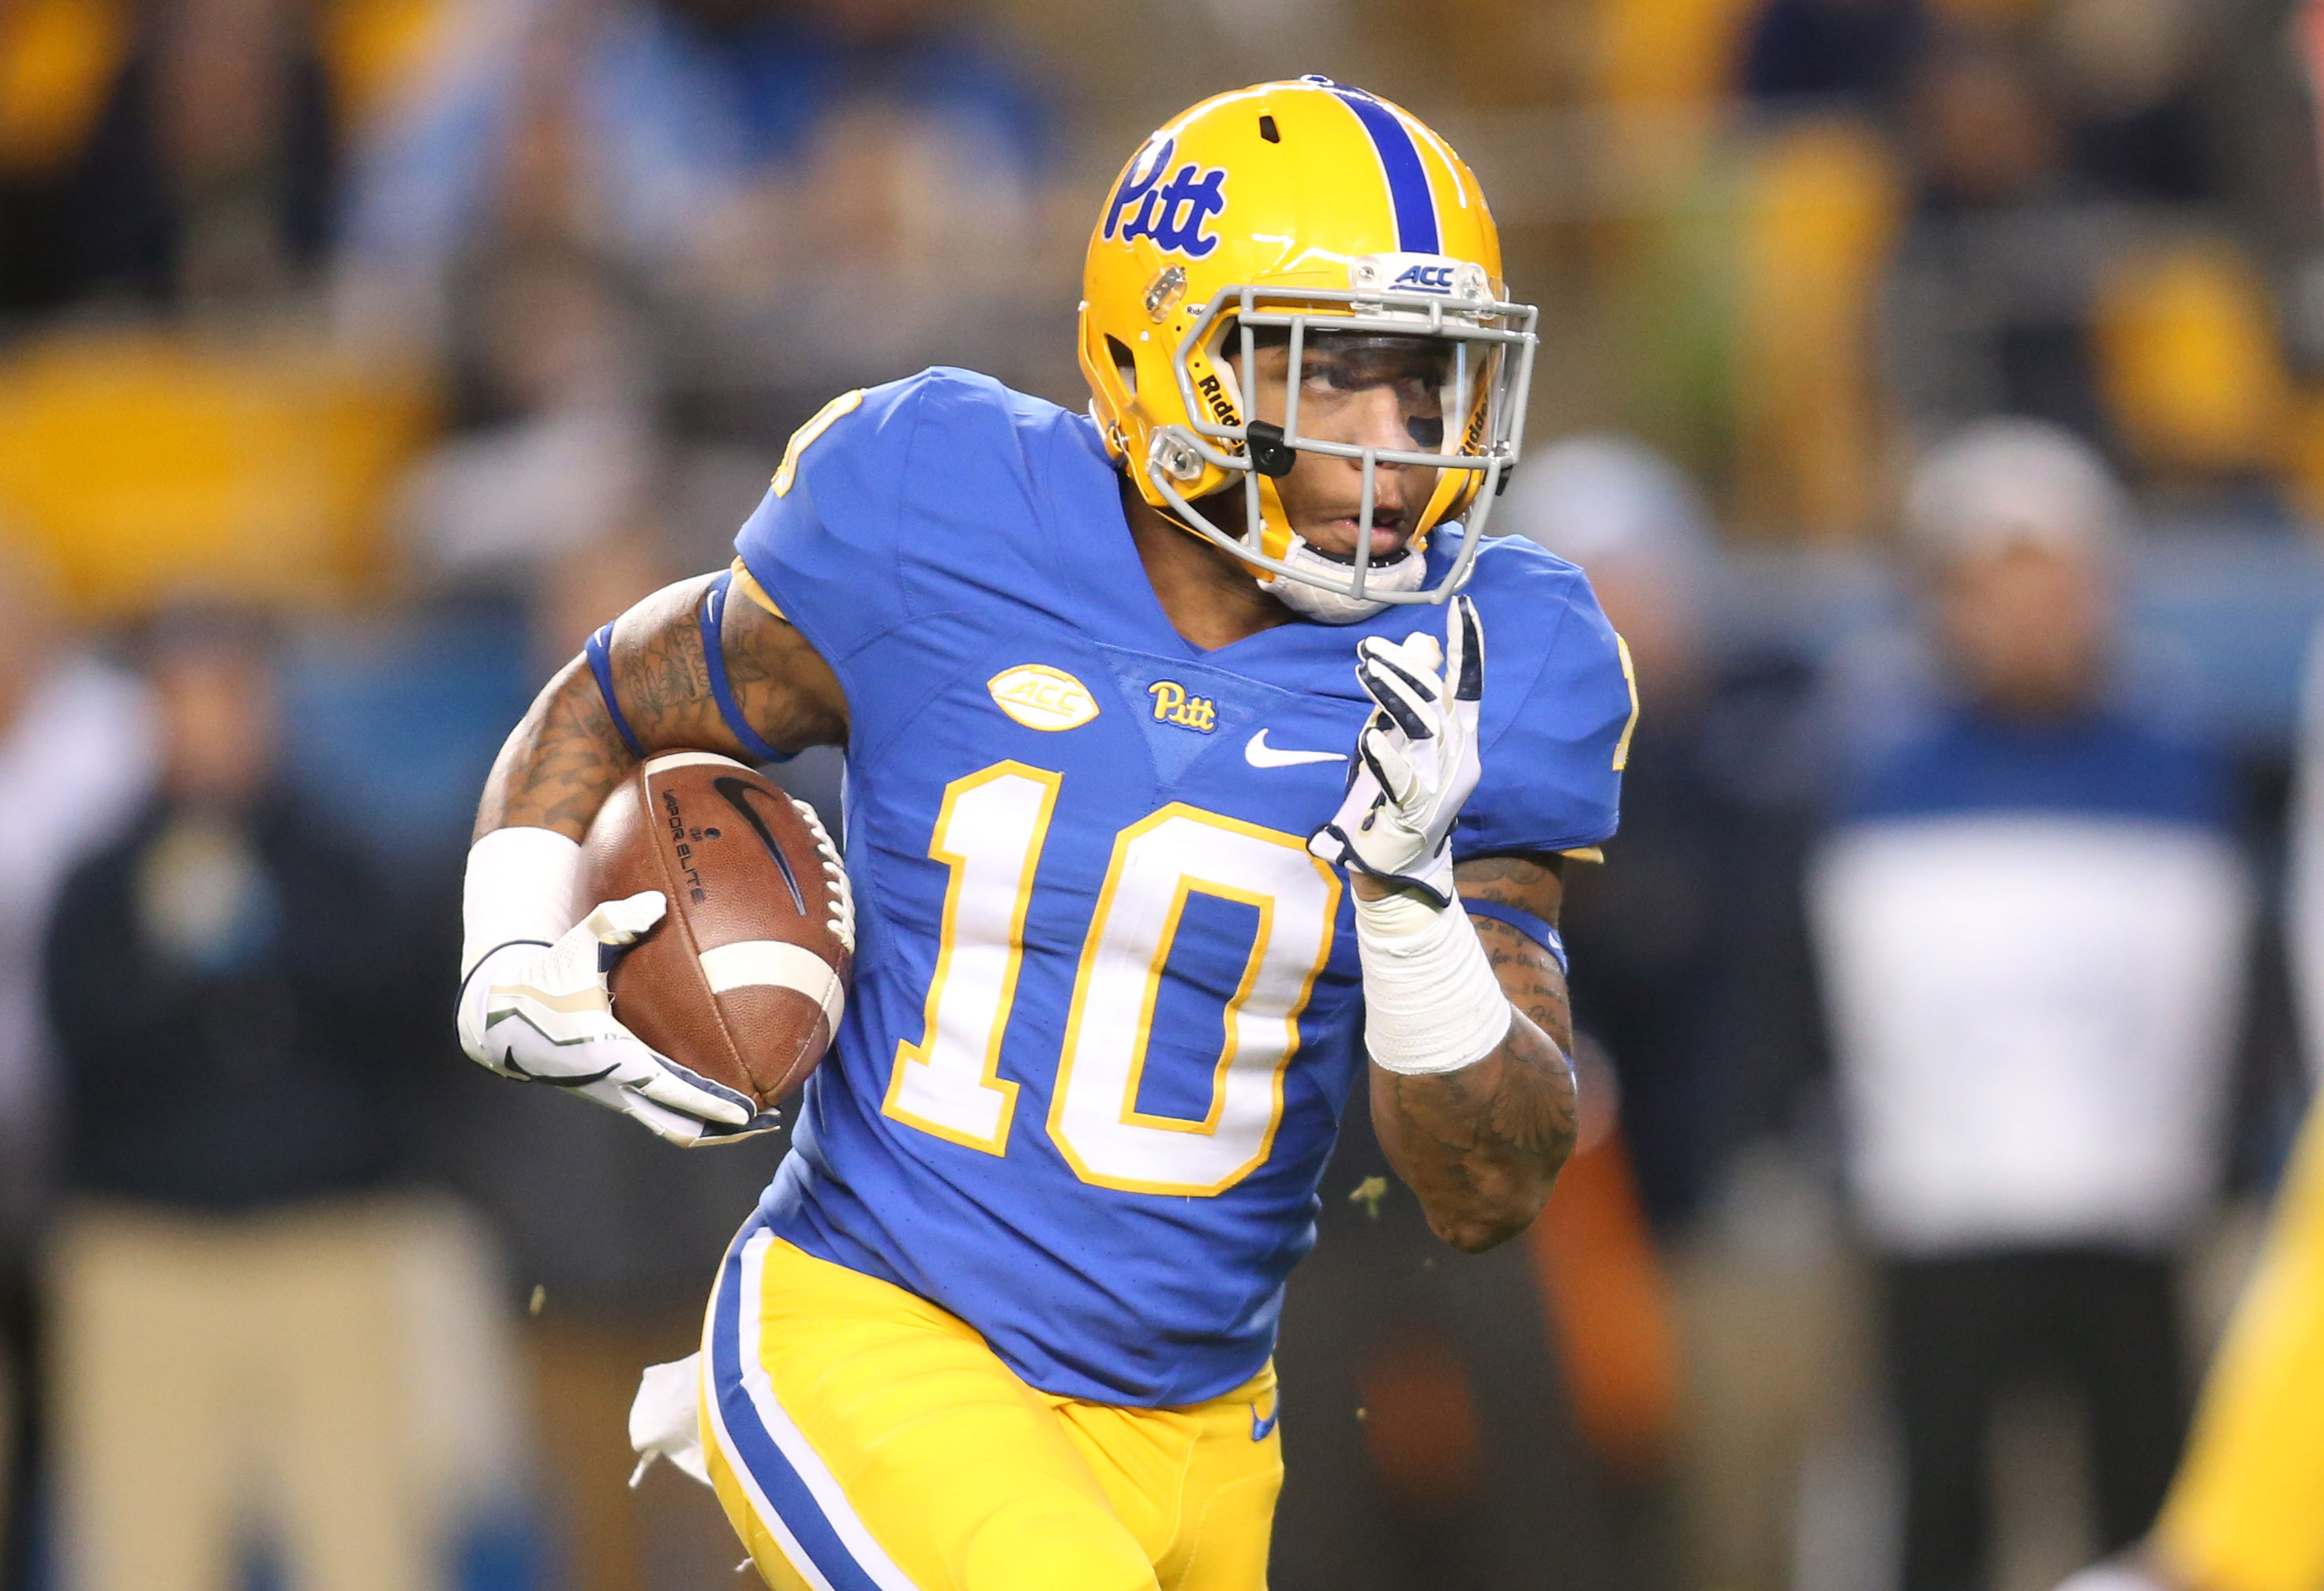 09e13dcdd Pitt receiver Quadree Henderson goes undrafted, to join Steelers as free  agent. By CardiacHill ...